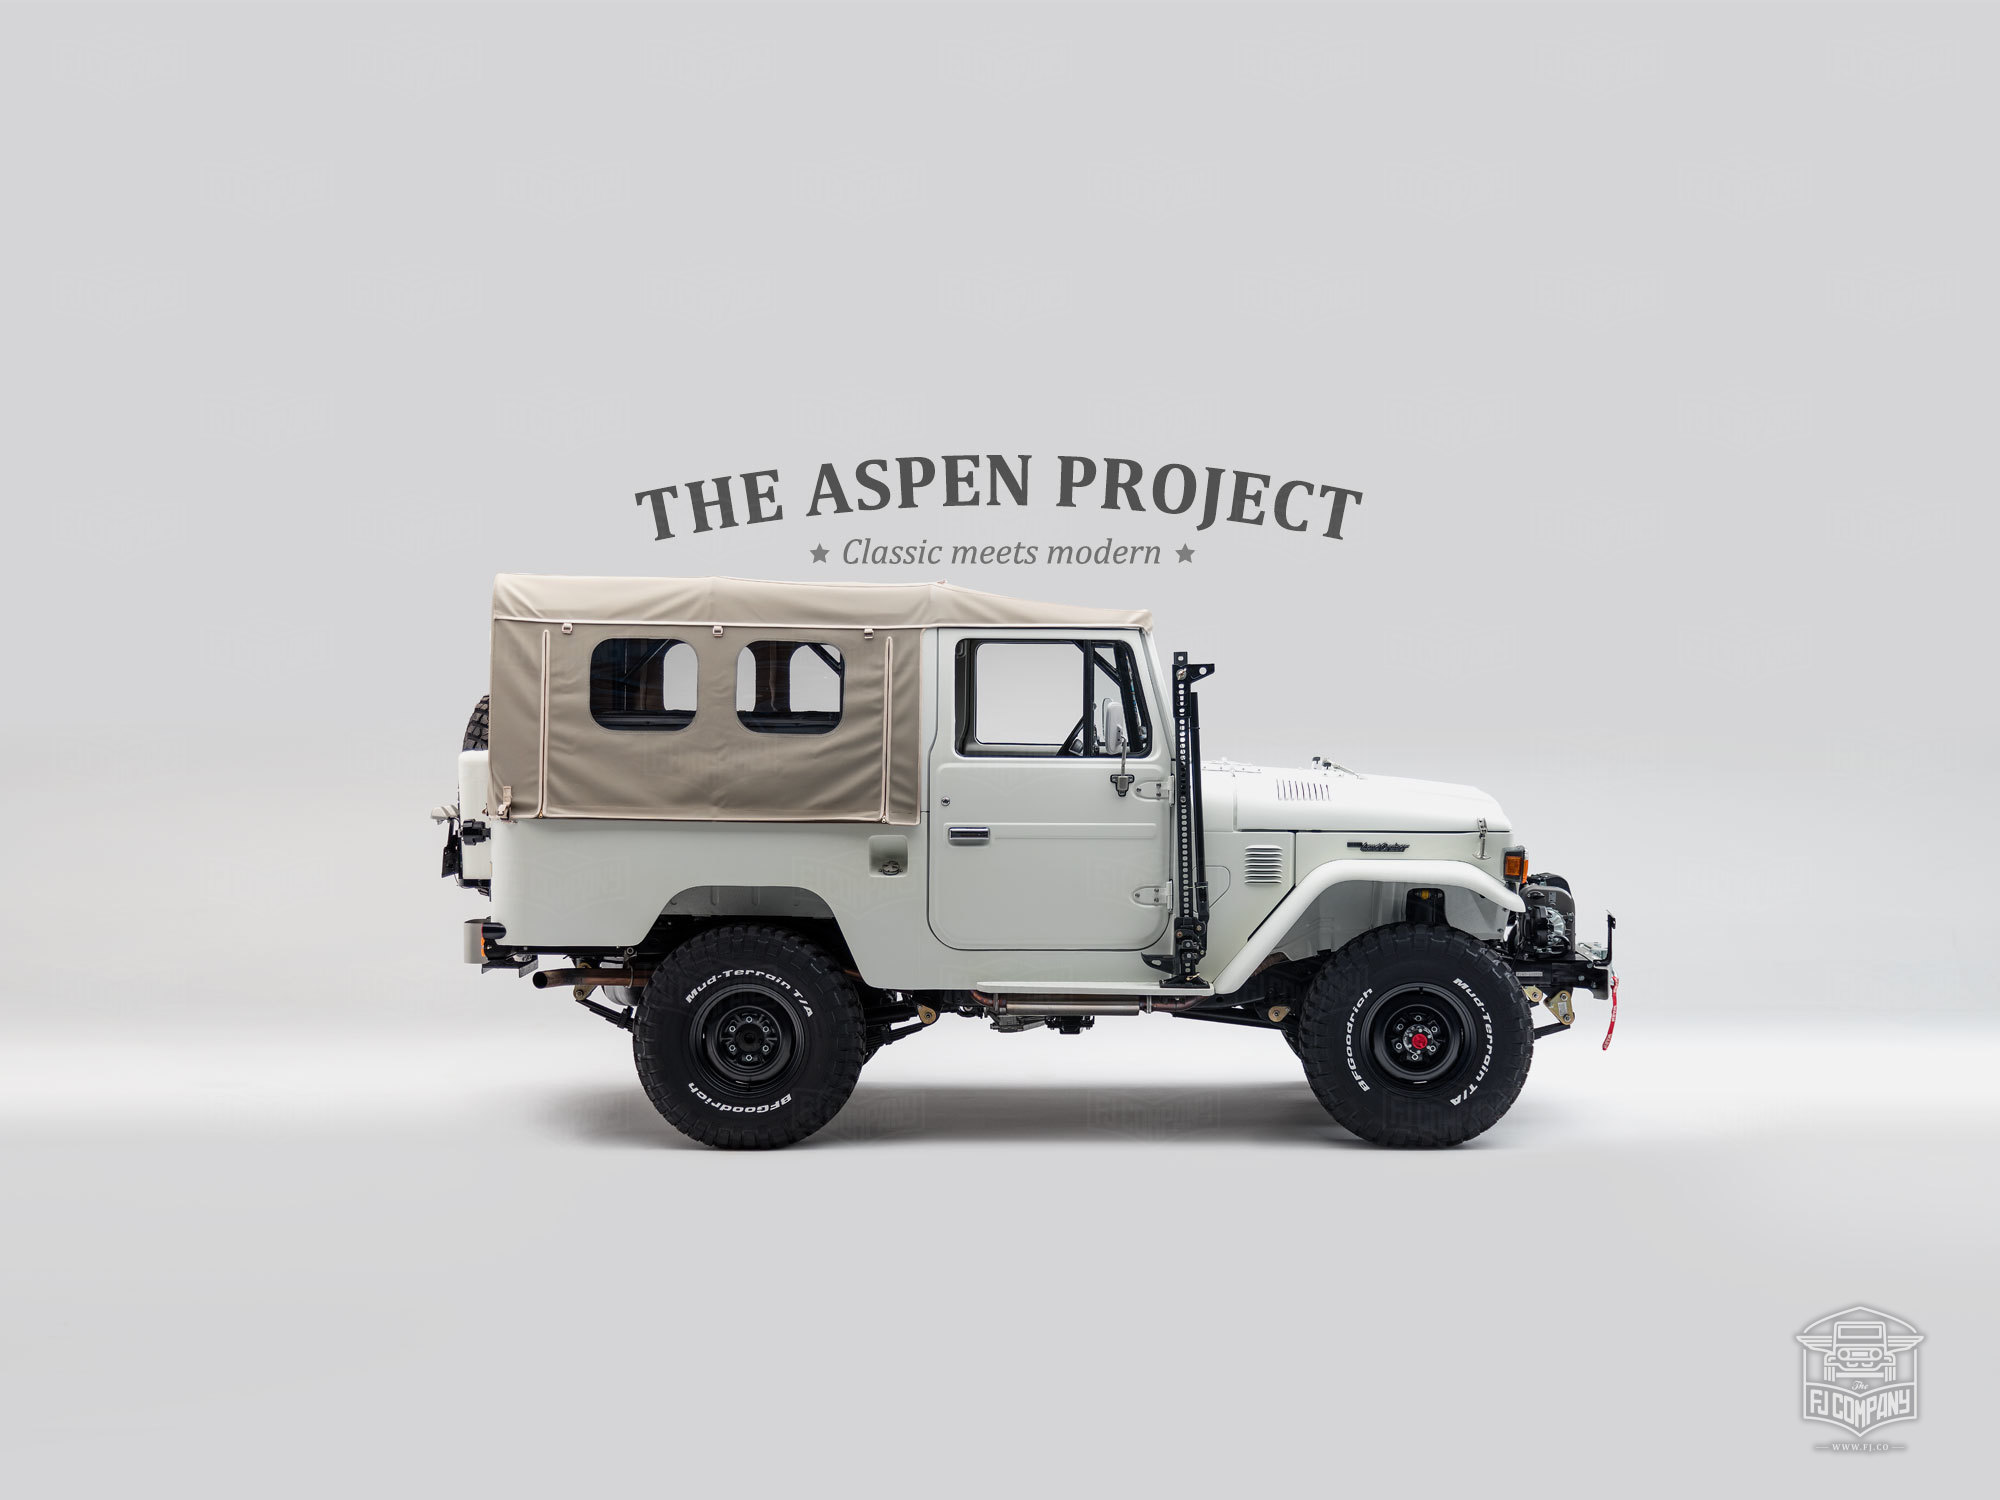 Our Souped Up Alpine-Inspired Ride - Unleashed at SEMA 2016